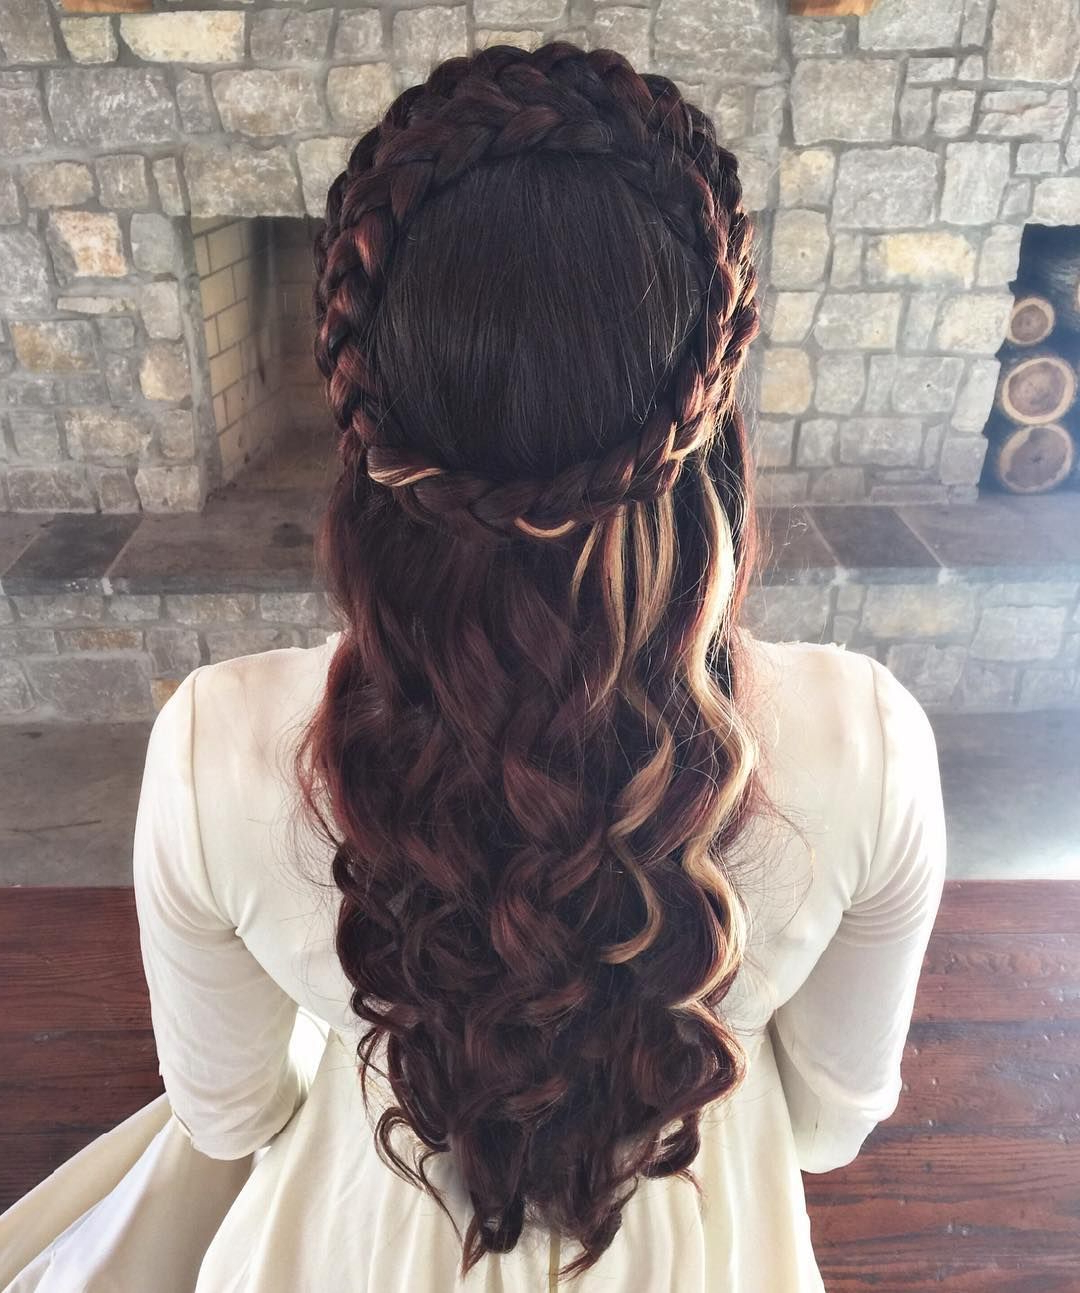 Best And Newest Medieval Crown Braided Hairstyles Pertaining To You Look Positively Medieval! #hairbypelerossi #maiden (View 7 of 20)